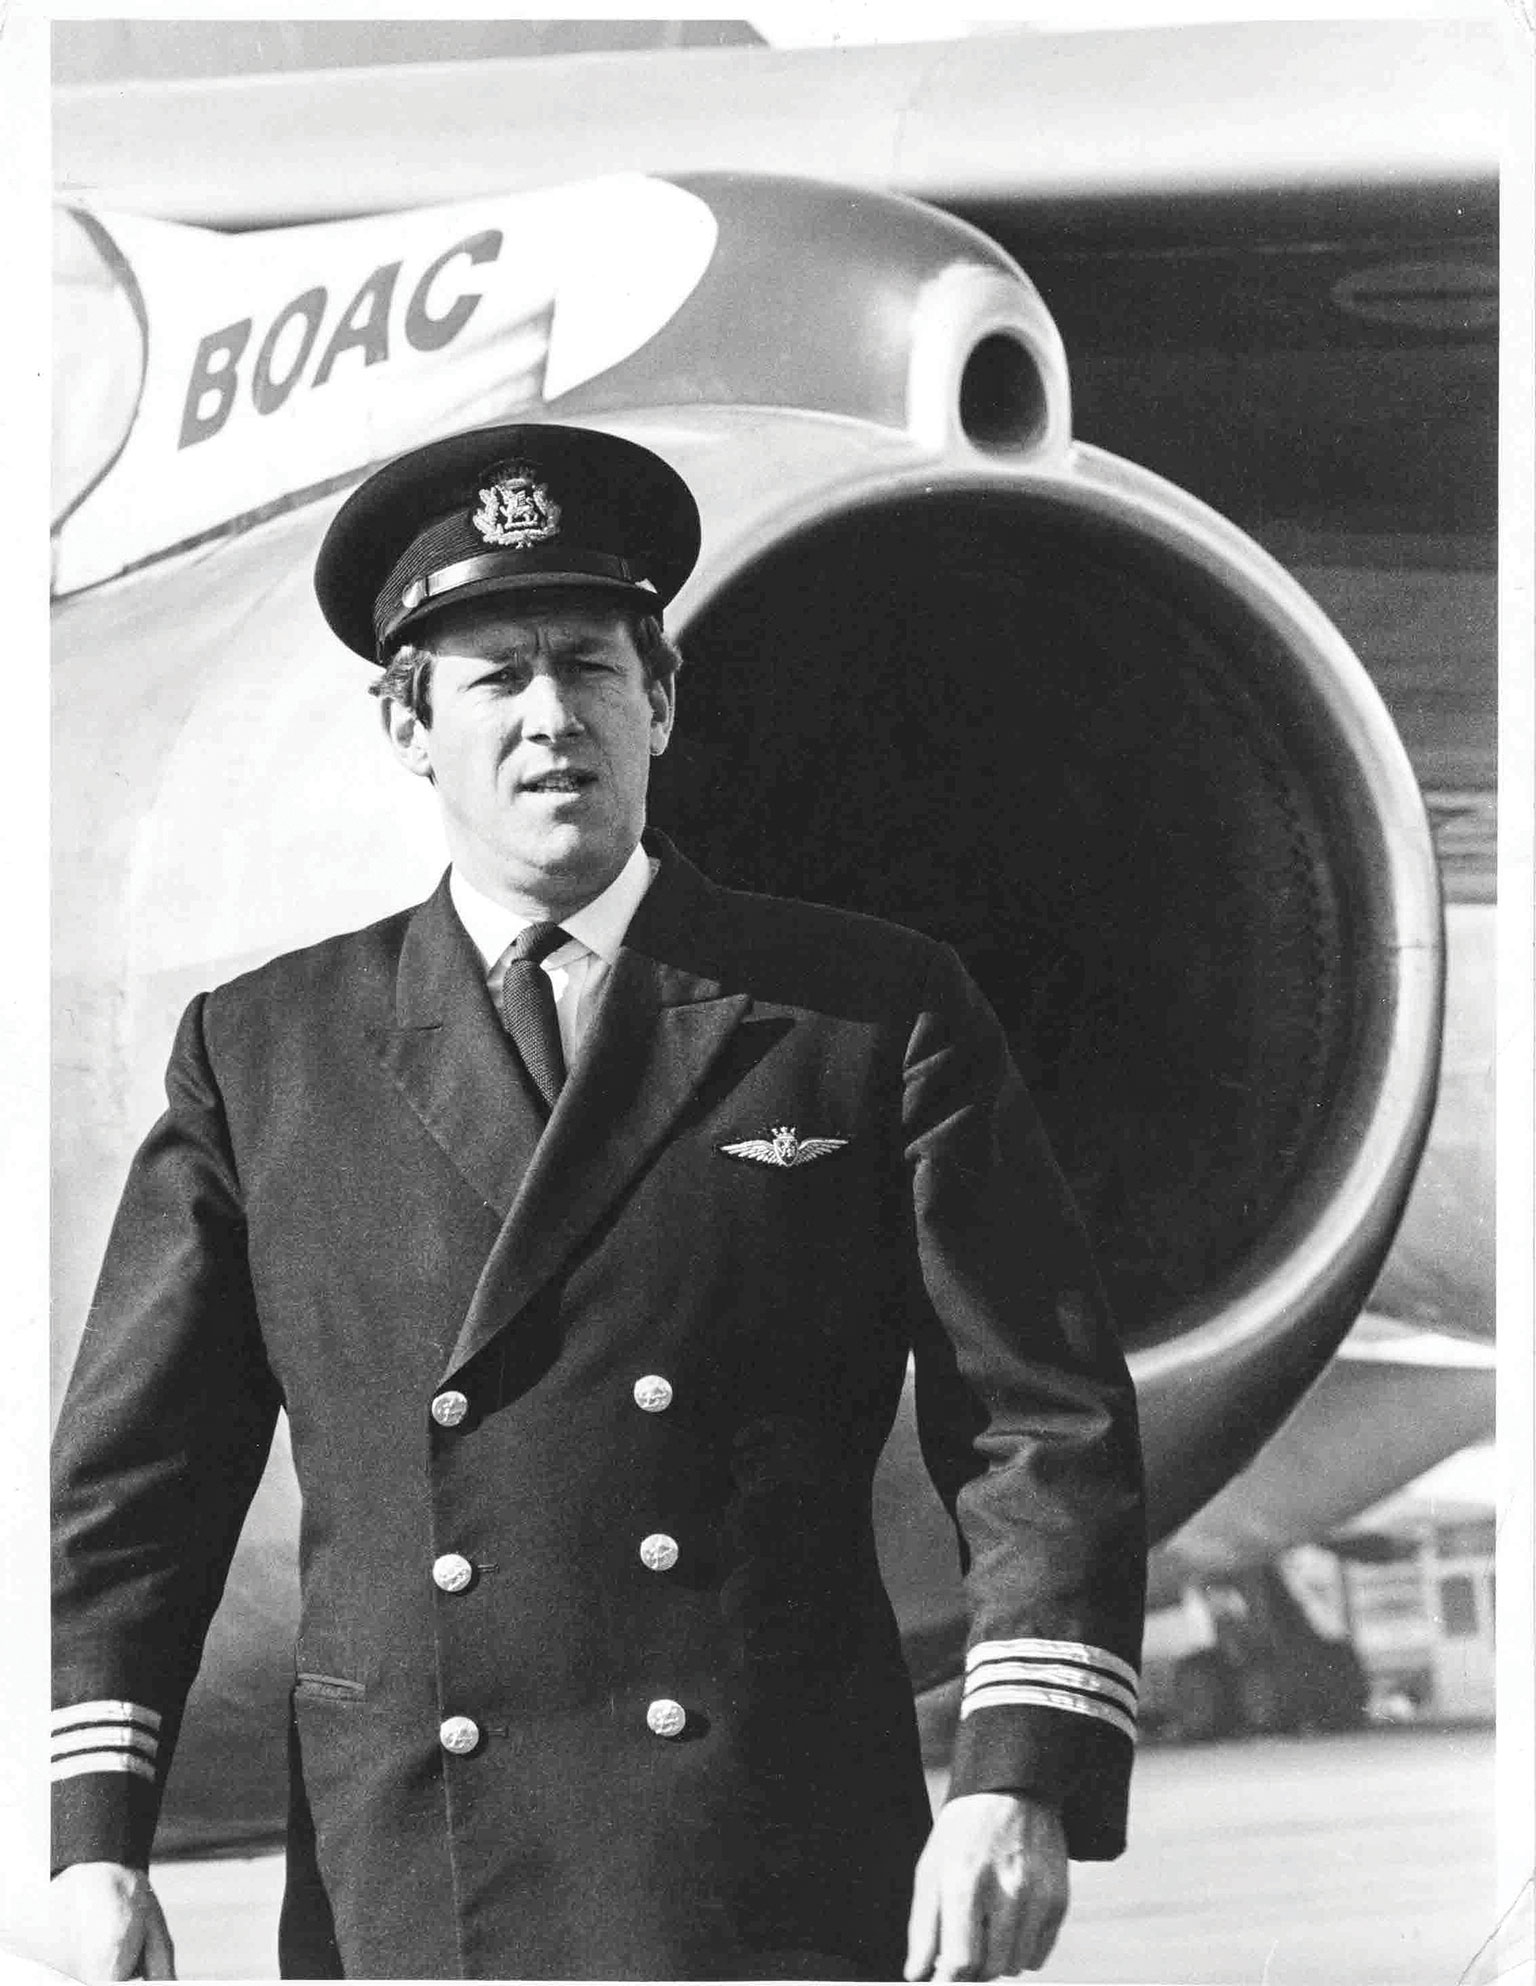 HD-BOAC—As-Senior-First-Officer-in-front-of-B707-436-R-R-Conway-engine-circa-1969—2nov17